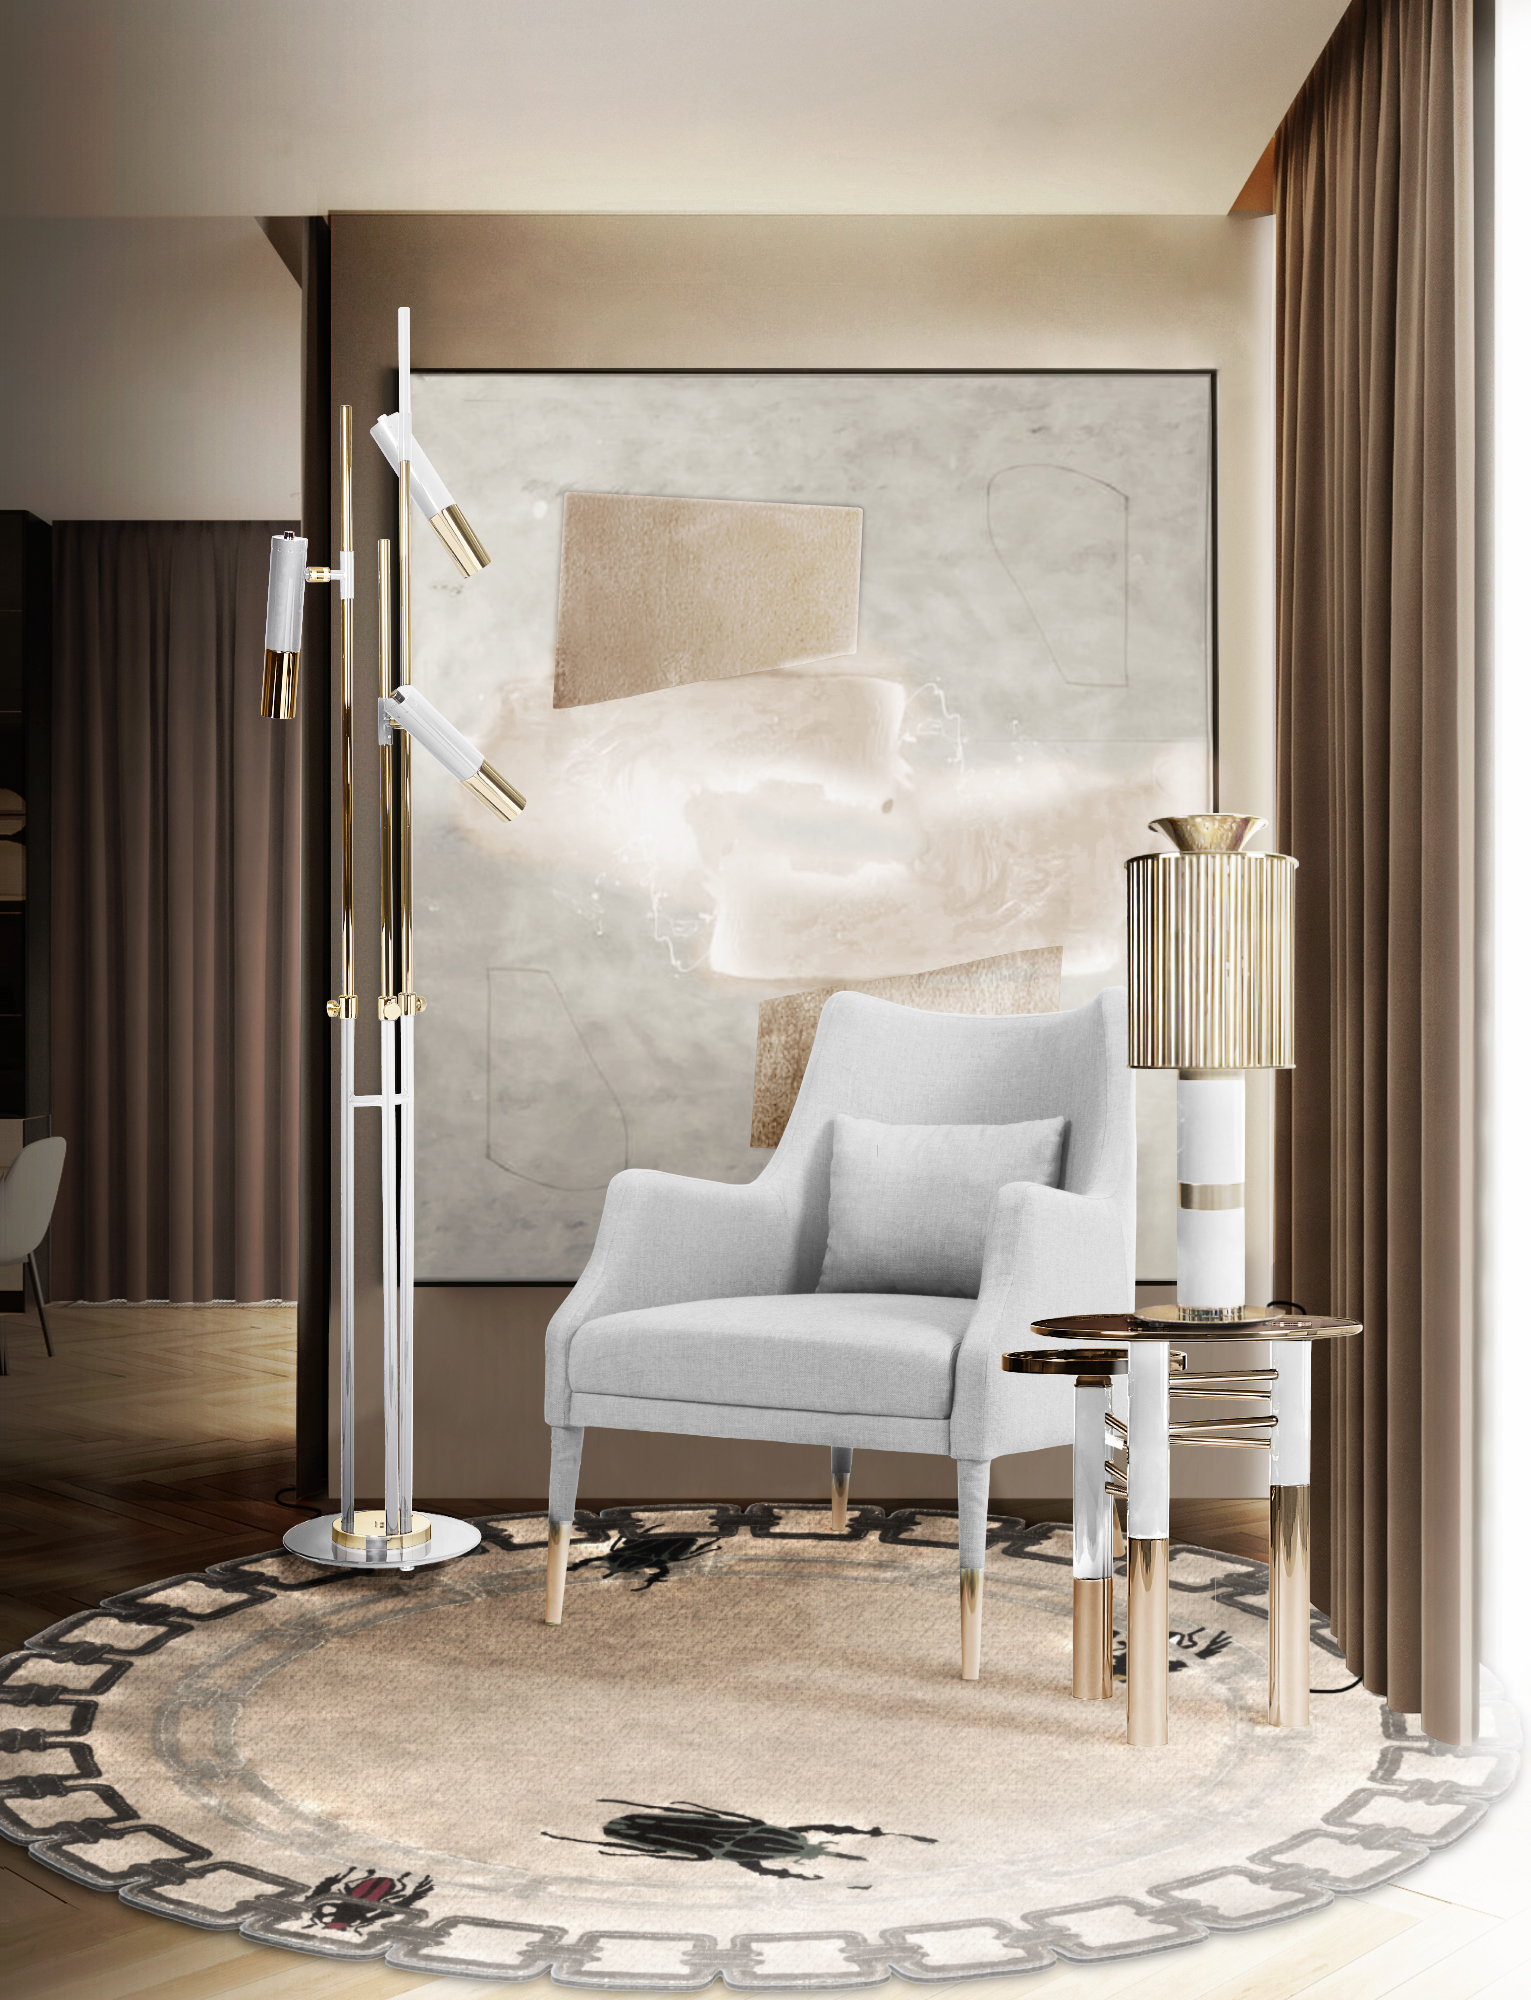 Check Out These 5 Lighting Design Trends for 2020 Before Heading to the Showroom! lighting design trends Check Out These 5 Fall Lighting Design Trends for 2020 Before Heading to the Showroom! DL amb ike branco donna